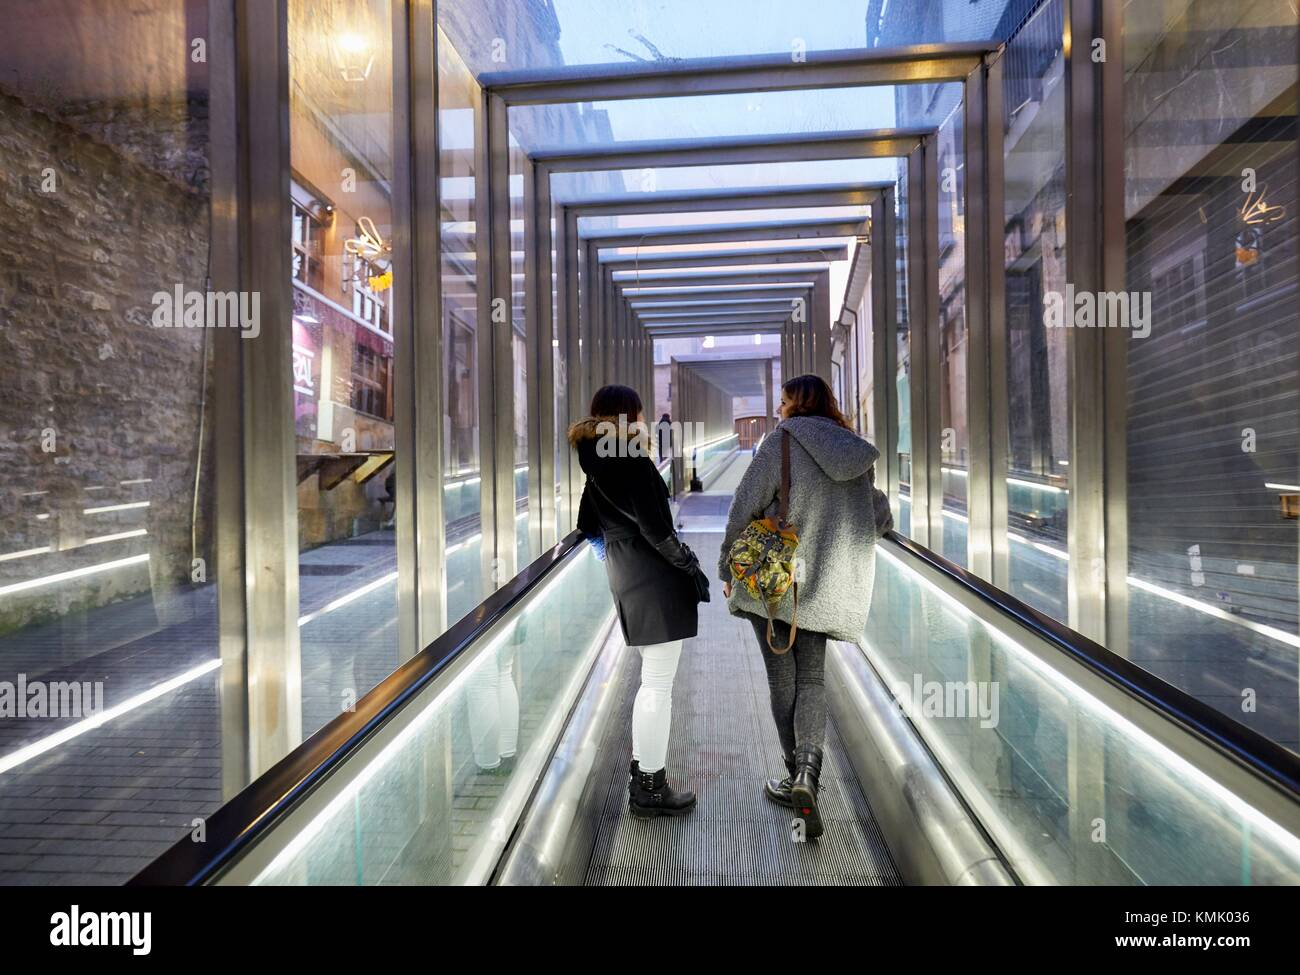 Moving walkway connecting old town with the city, Vitoria-Gasteiz, Araba, Basque Country, Spain, Europe - Stock Image